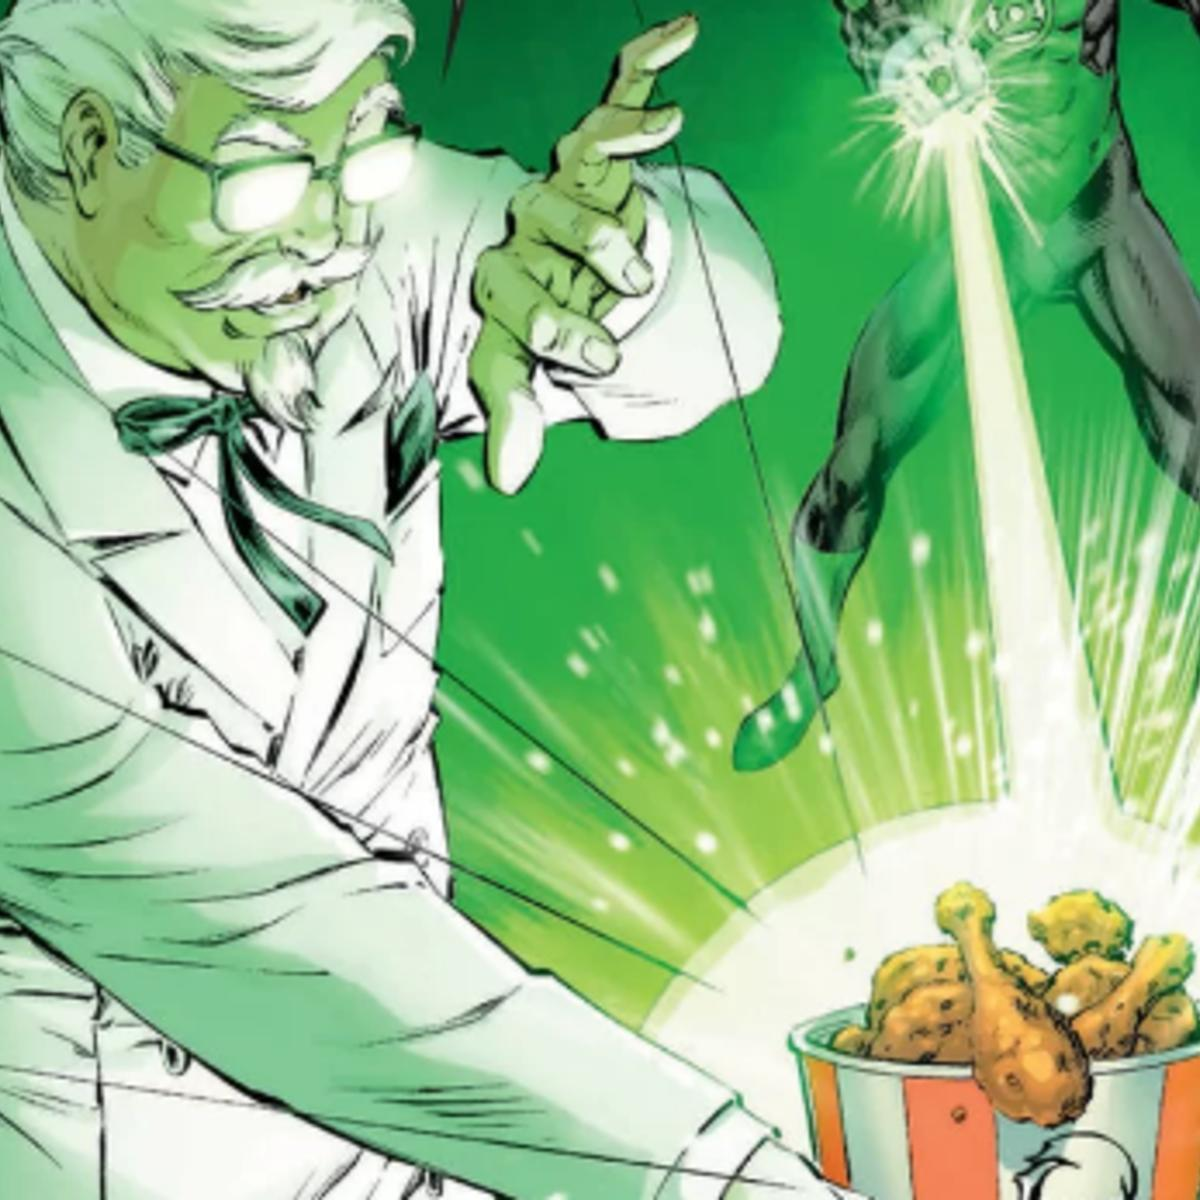 Syfy green lanterncolonel sanders sdcc crossover comic bite into this extra crispy green lanterncolonel sanders crossover comic thecheapjerseys Choice Image